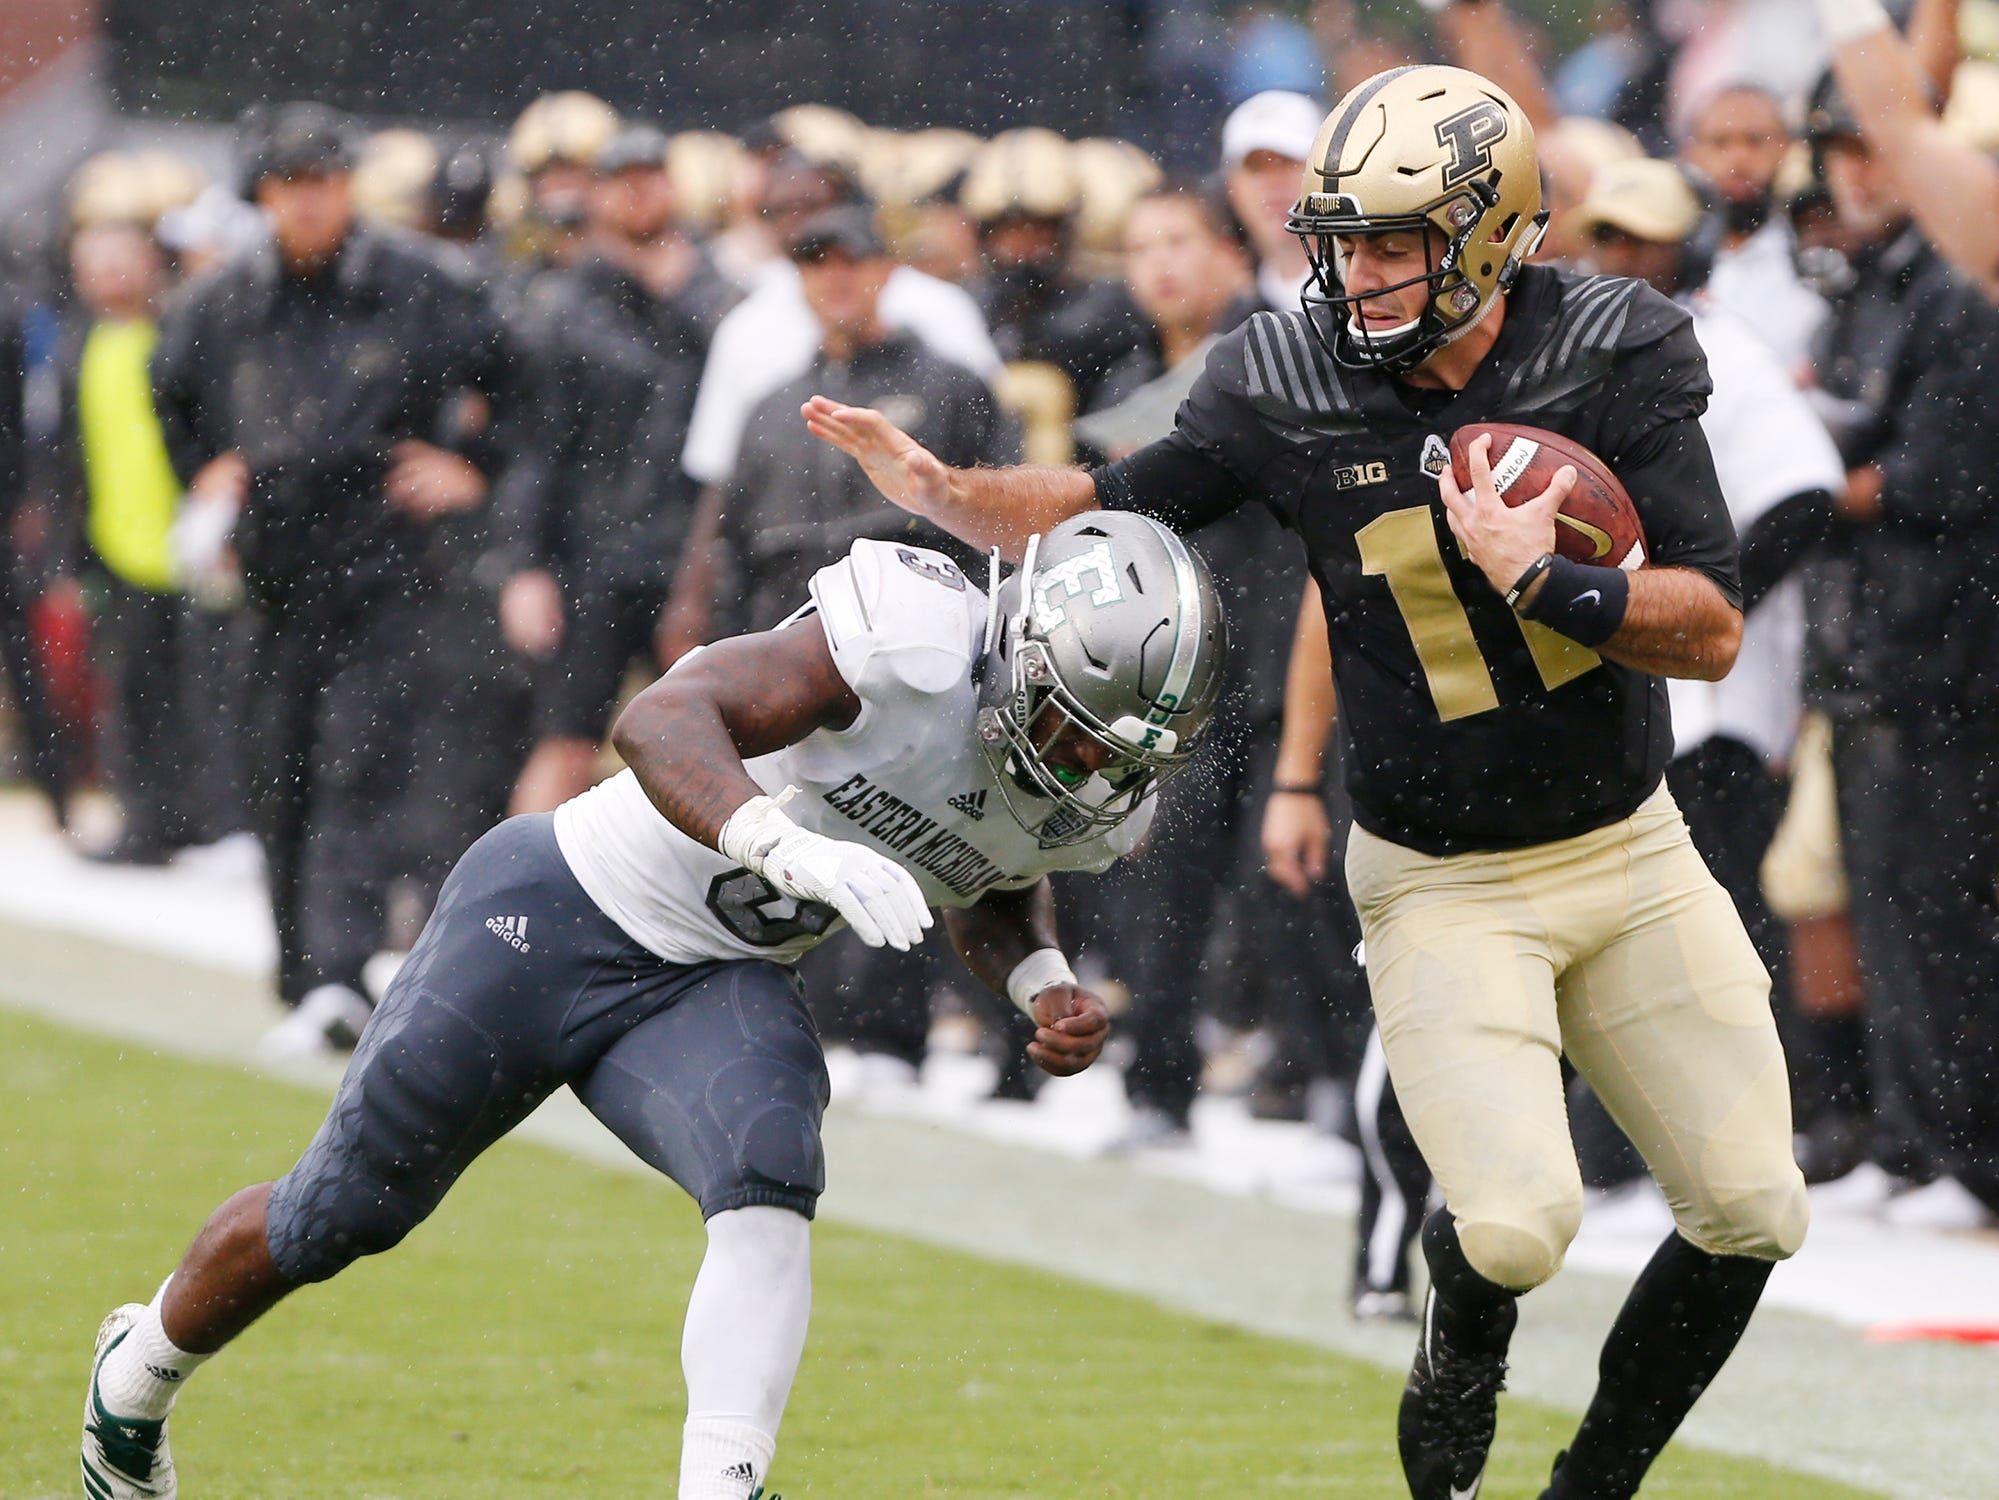 Purdue quarterback David Blough is chased down by Vince Calhoun of Eastern Michigan in the first half Saturday, September 8, 2018, in West Lafayette. Purdue fell to Eastern Michigan 20-19.